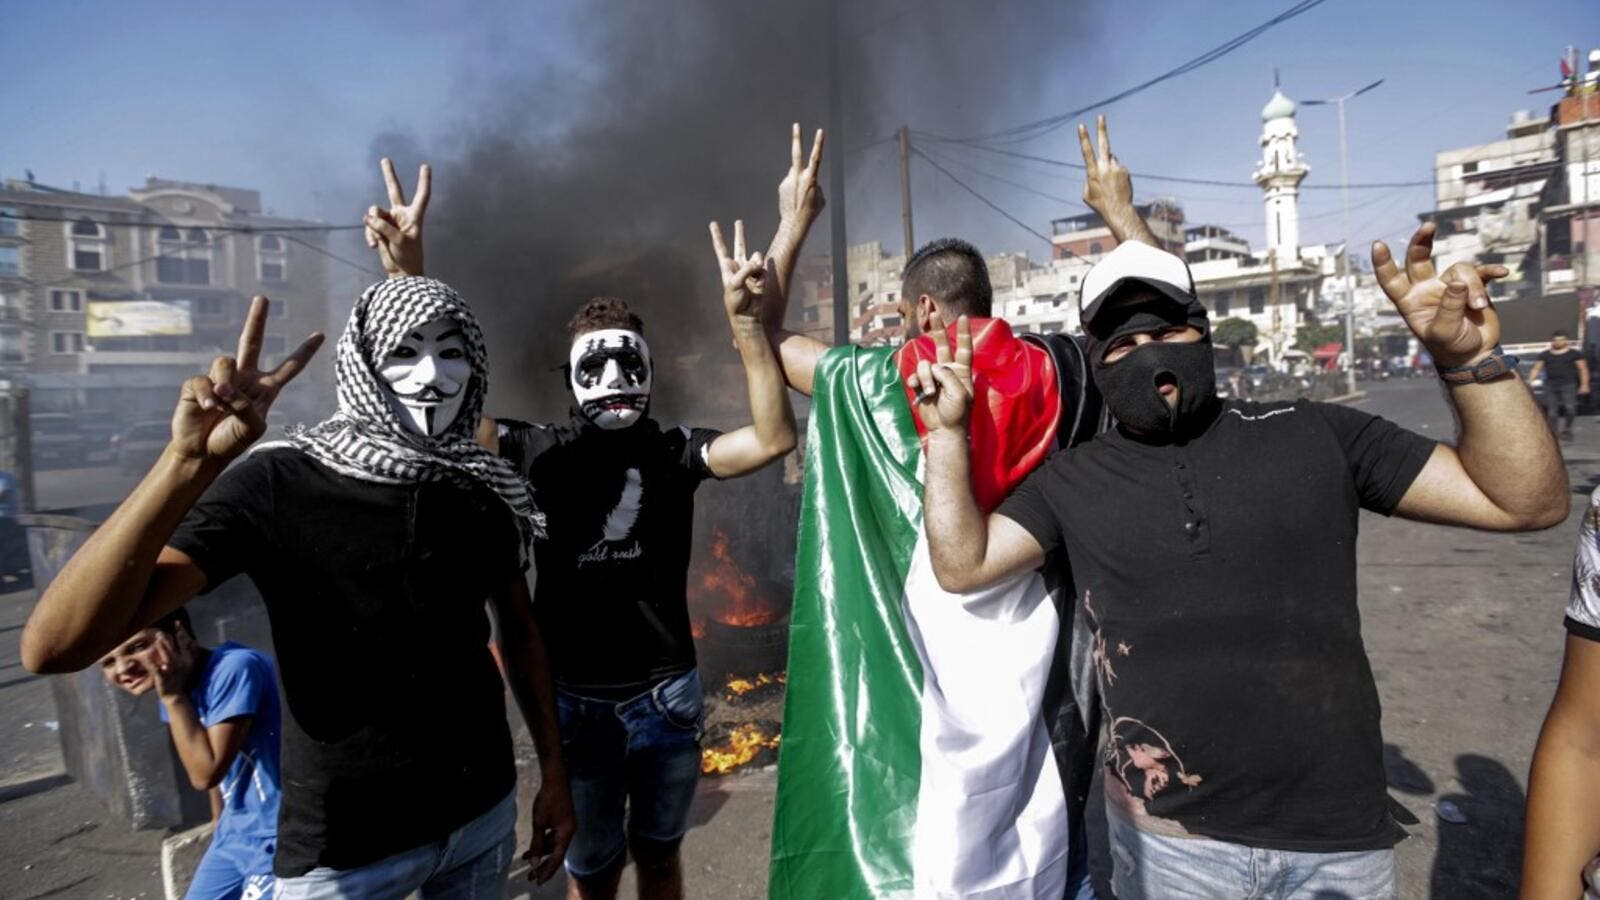 Masked protesters flash the victory gesture as they block the main road outside the Palestinian refugee camp of Burj al-Barajneh, south of the Lebanese capital Beirut, on July 16, 2019. (AFP/ File Photo)